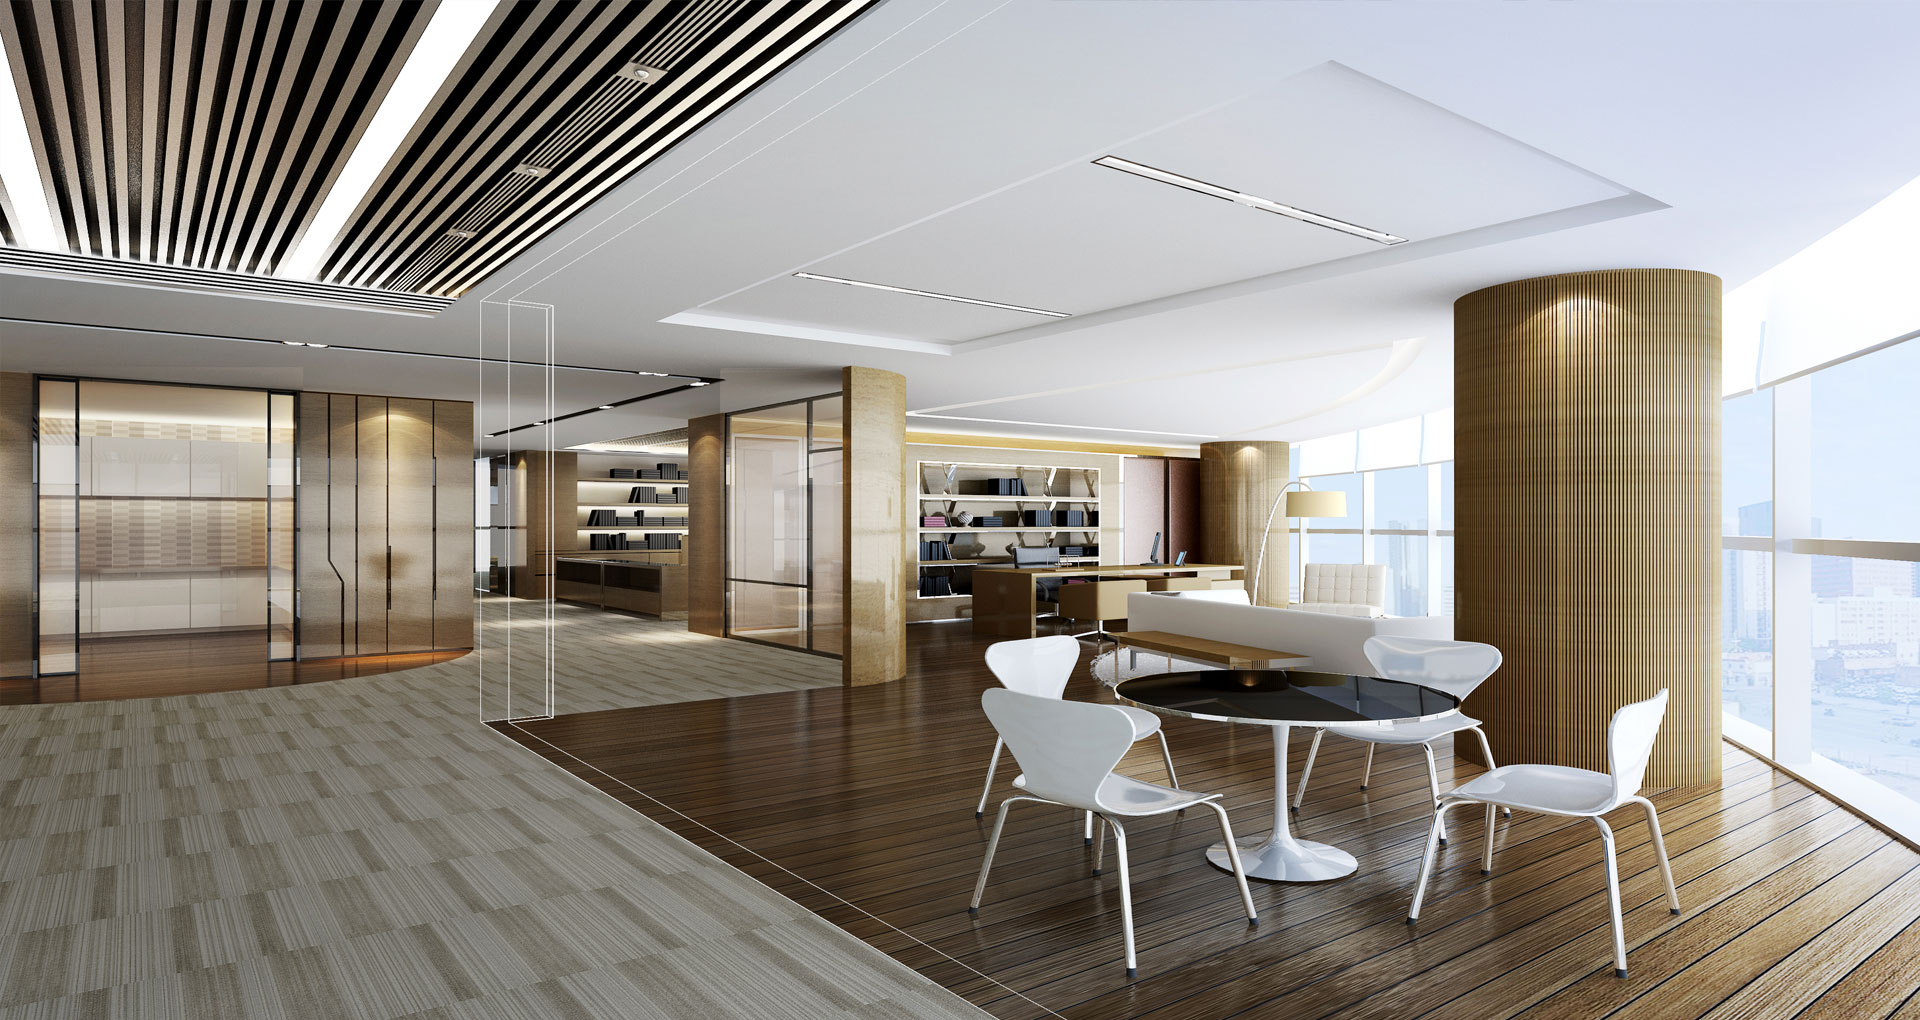 Office interior design inpro concepts design for Interior design office modern